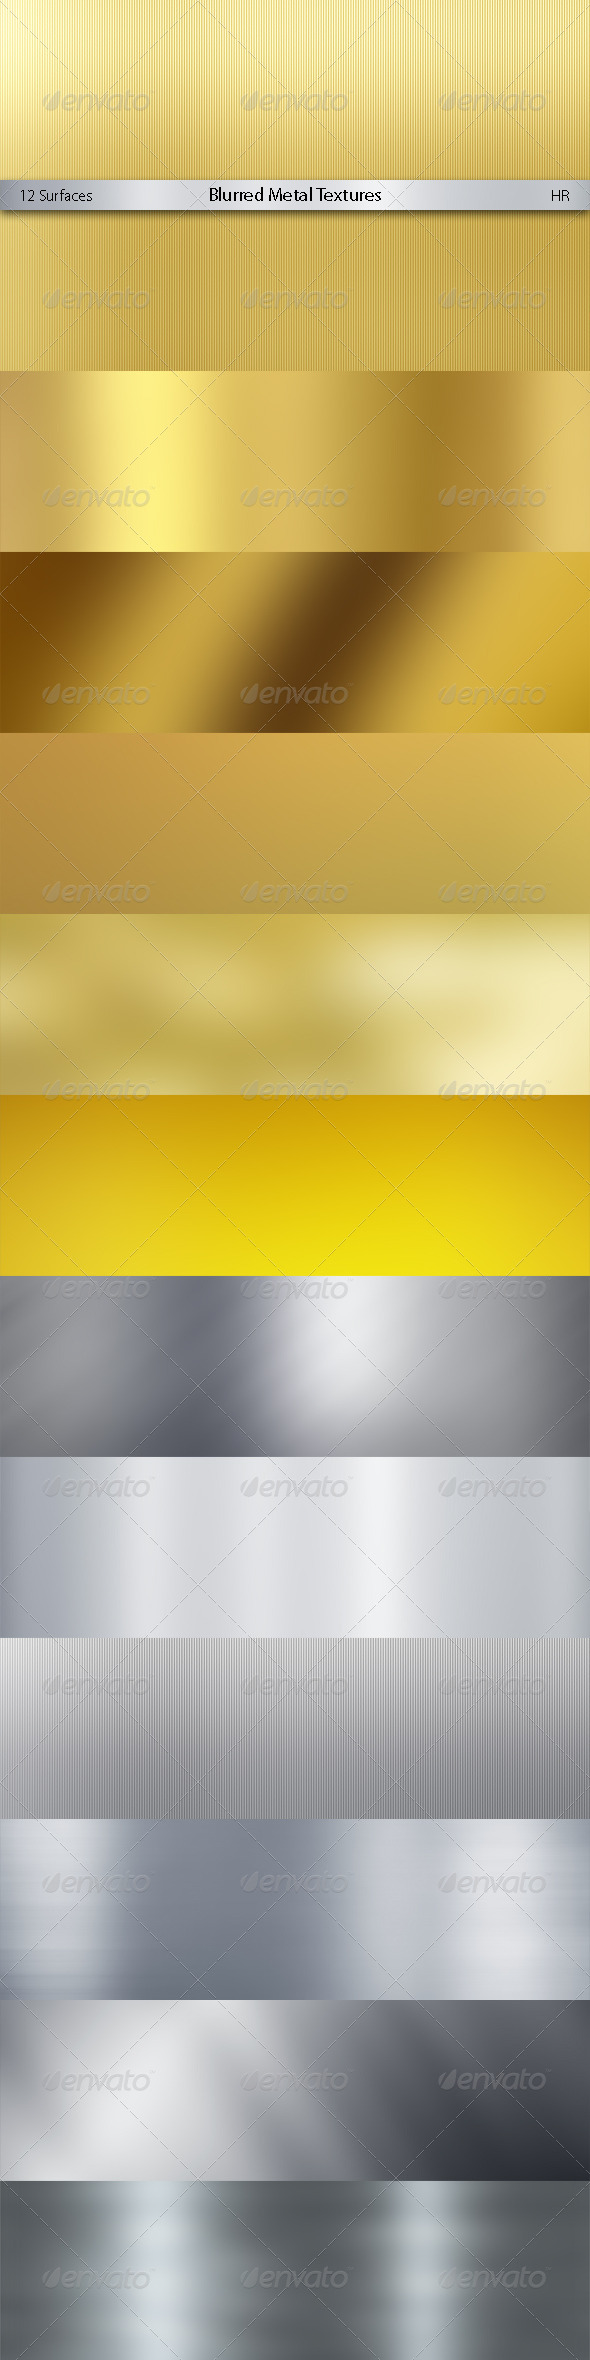 Blurred Metal Textures Background